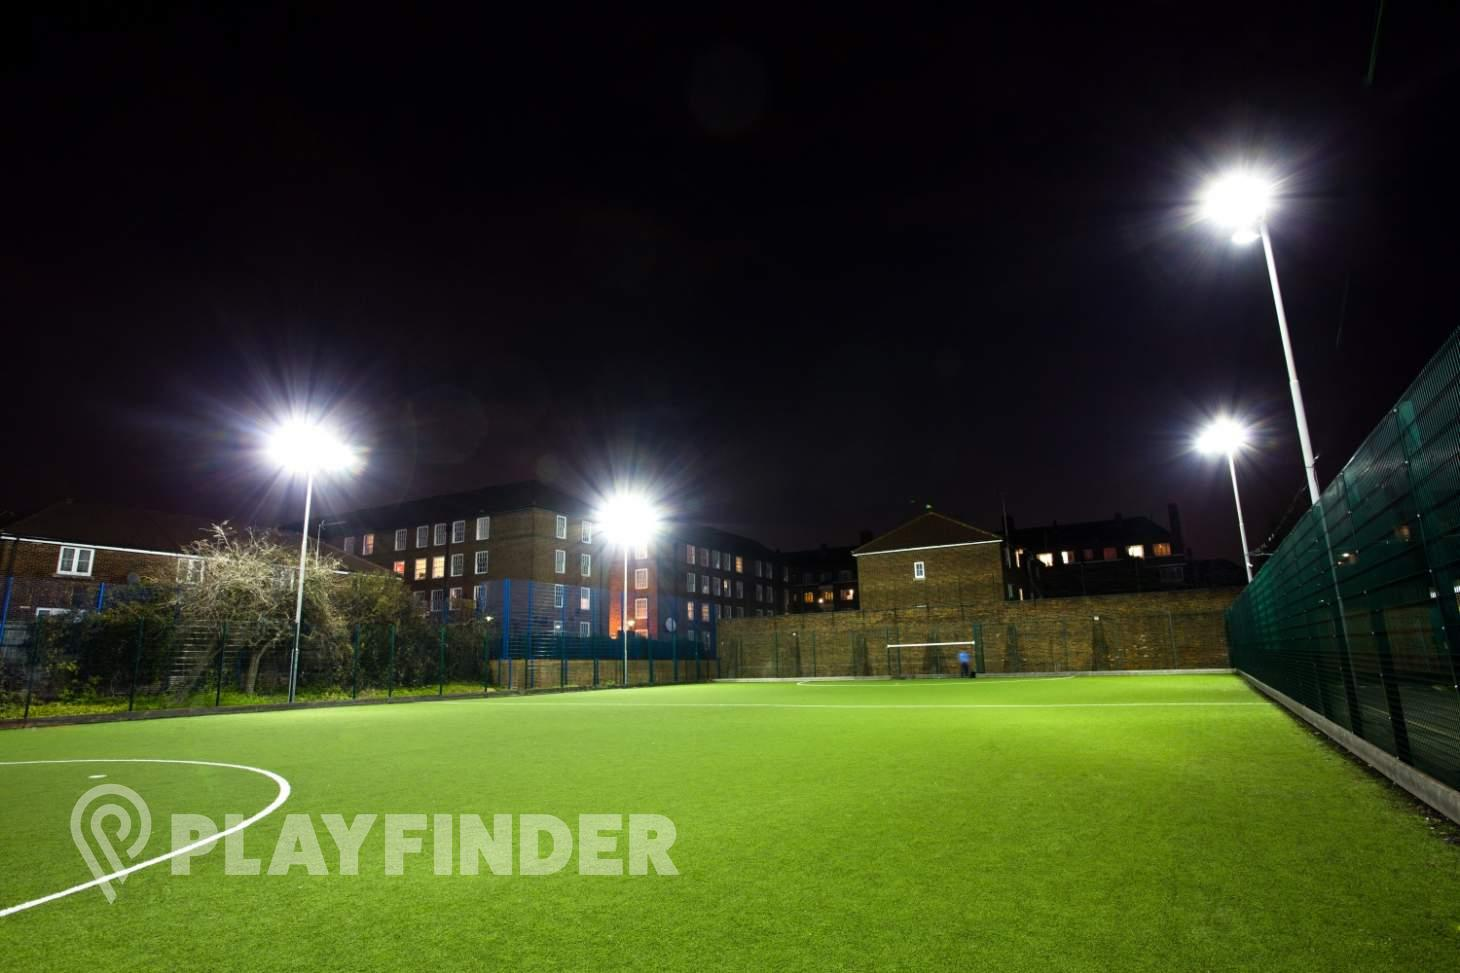 Phoenix Academy 7 a side | 3G Astroturf football pitch